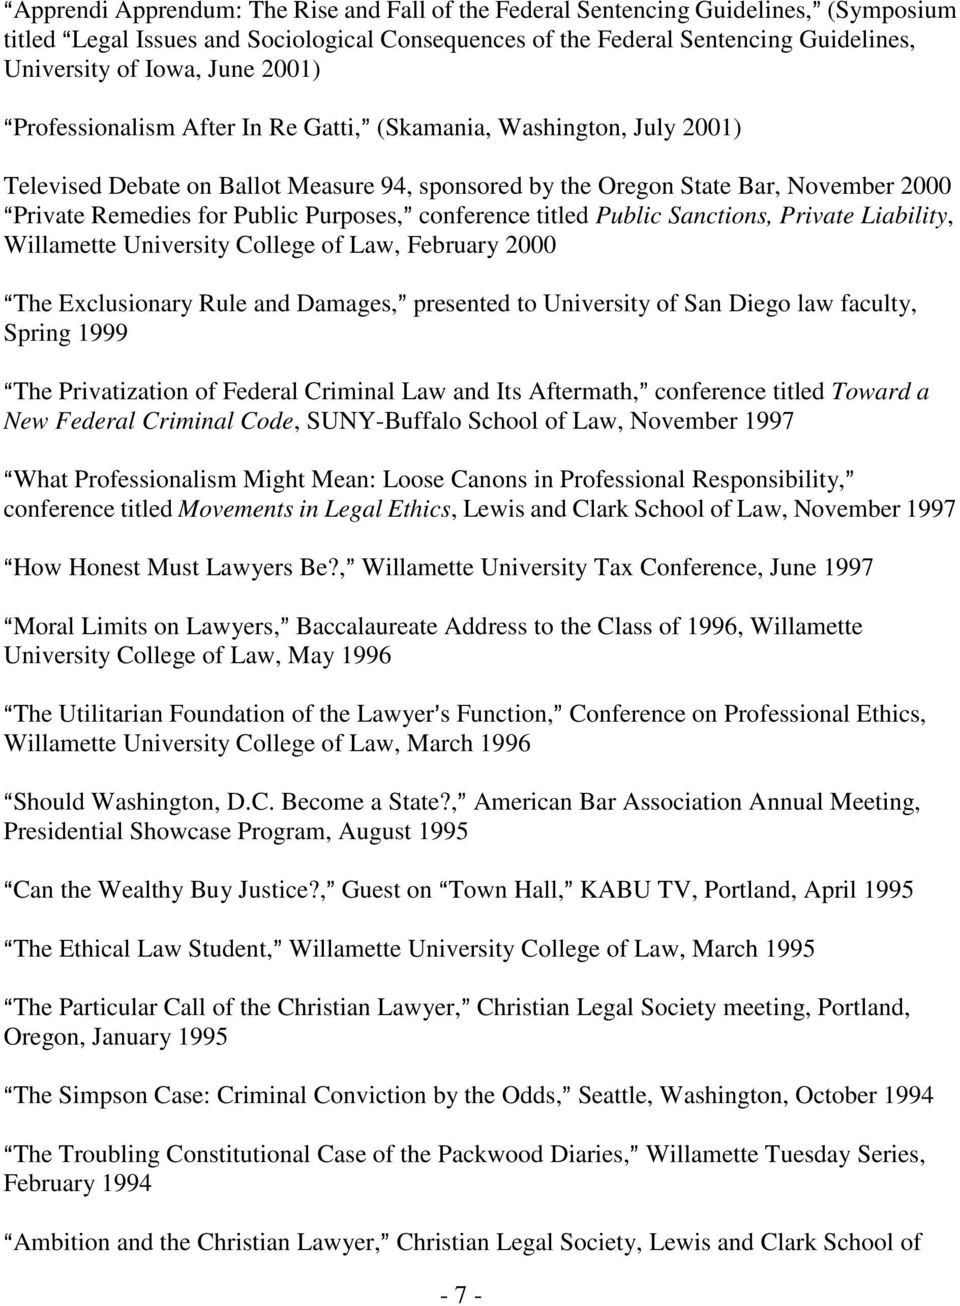 Purposes,@ conference titled Public Sanctions, Private Liability, Willamette University College of Law, February 2000 AThe Exclusionary Rule and Damages,@ presented to University of San Diego law